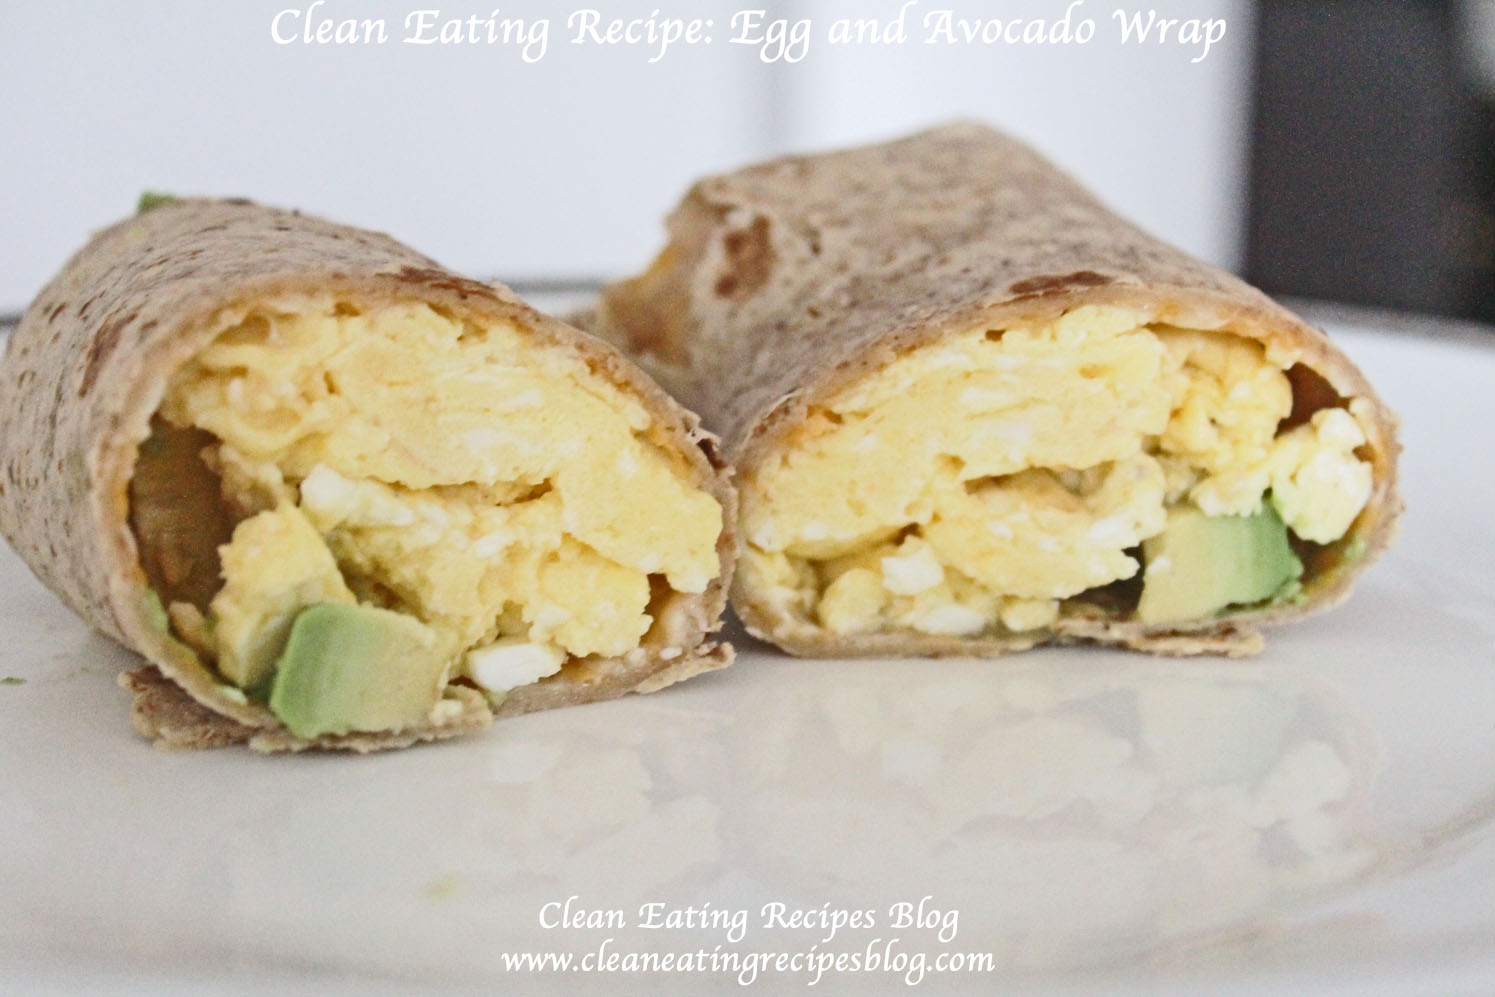 A Healthy Breakfast for Clean Eating: Egg and Avocado Wrap